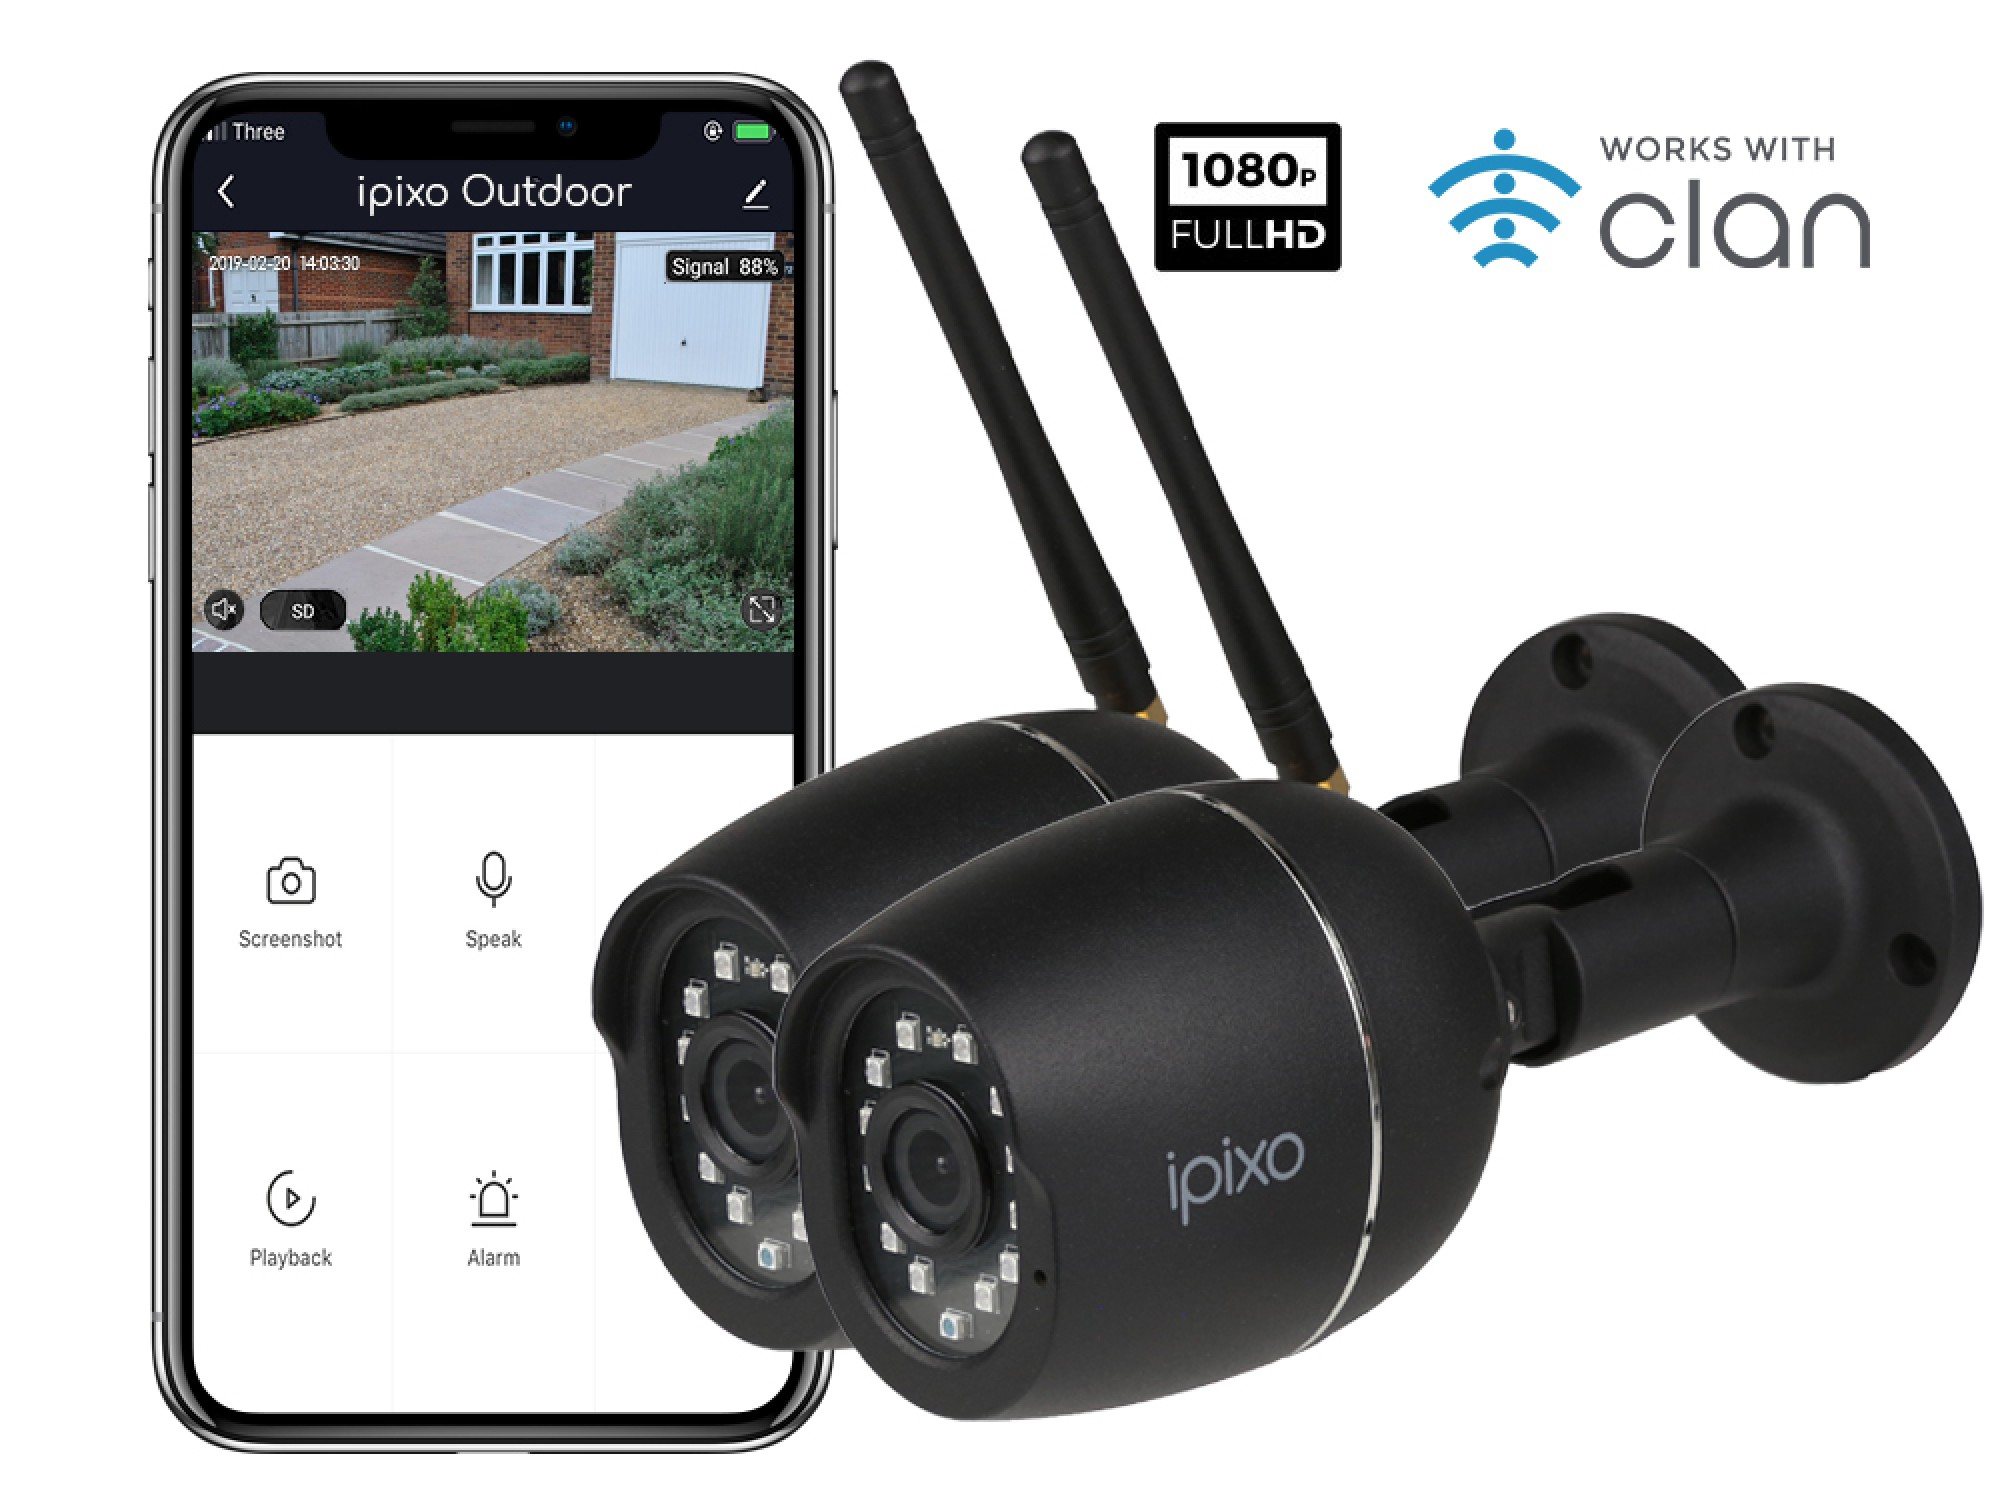 New ipixo Outdoor WiFi 1080p Security Camera (Twin pack)